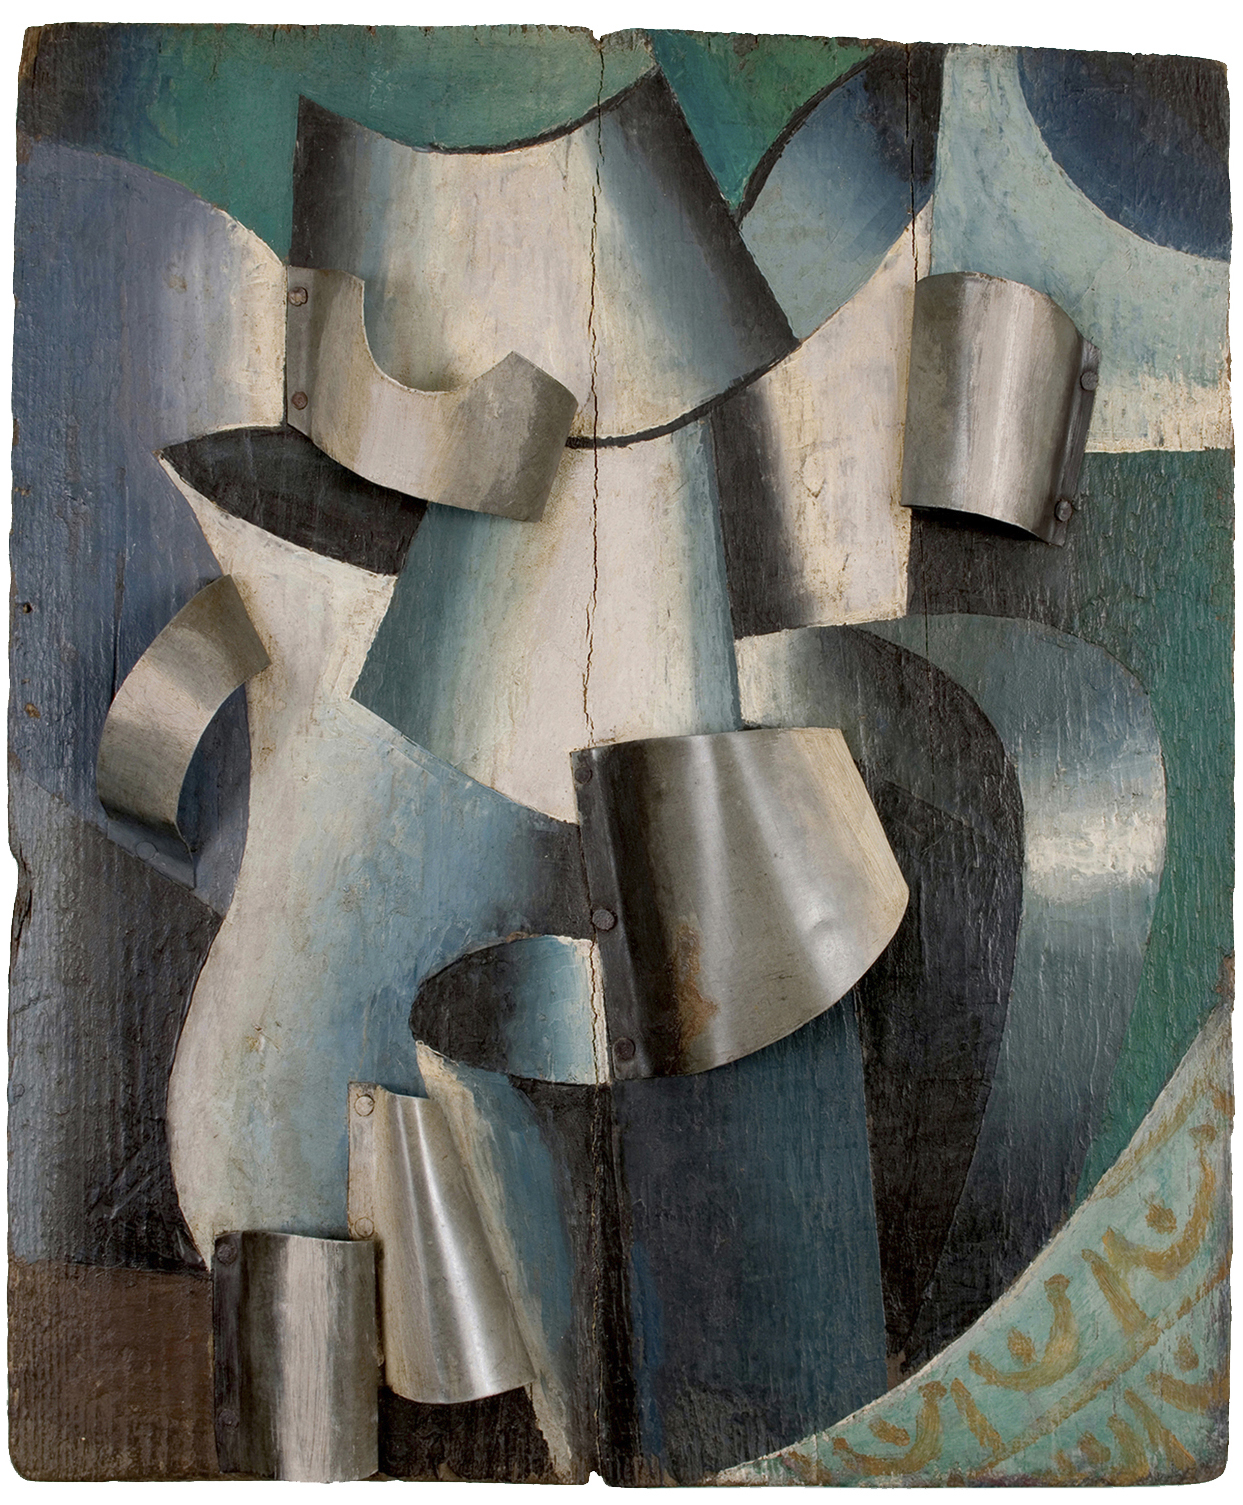 "Unattributed. Unsigned. In the style of Lyubov Popova. Inscription on reverse translates ""Water on a Table""  Oil and metal on wood, 39 x 33 cm."